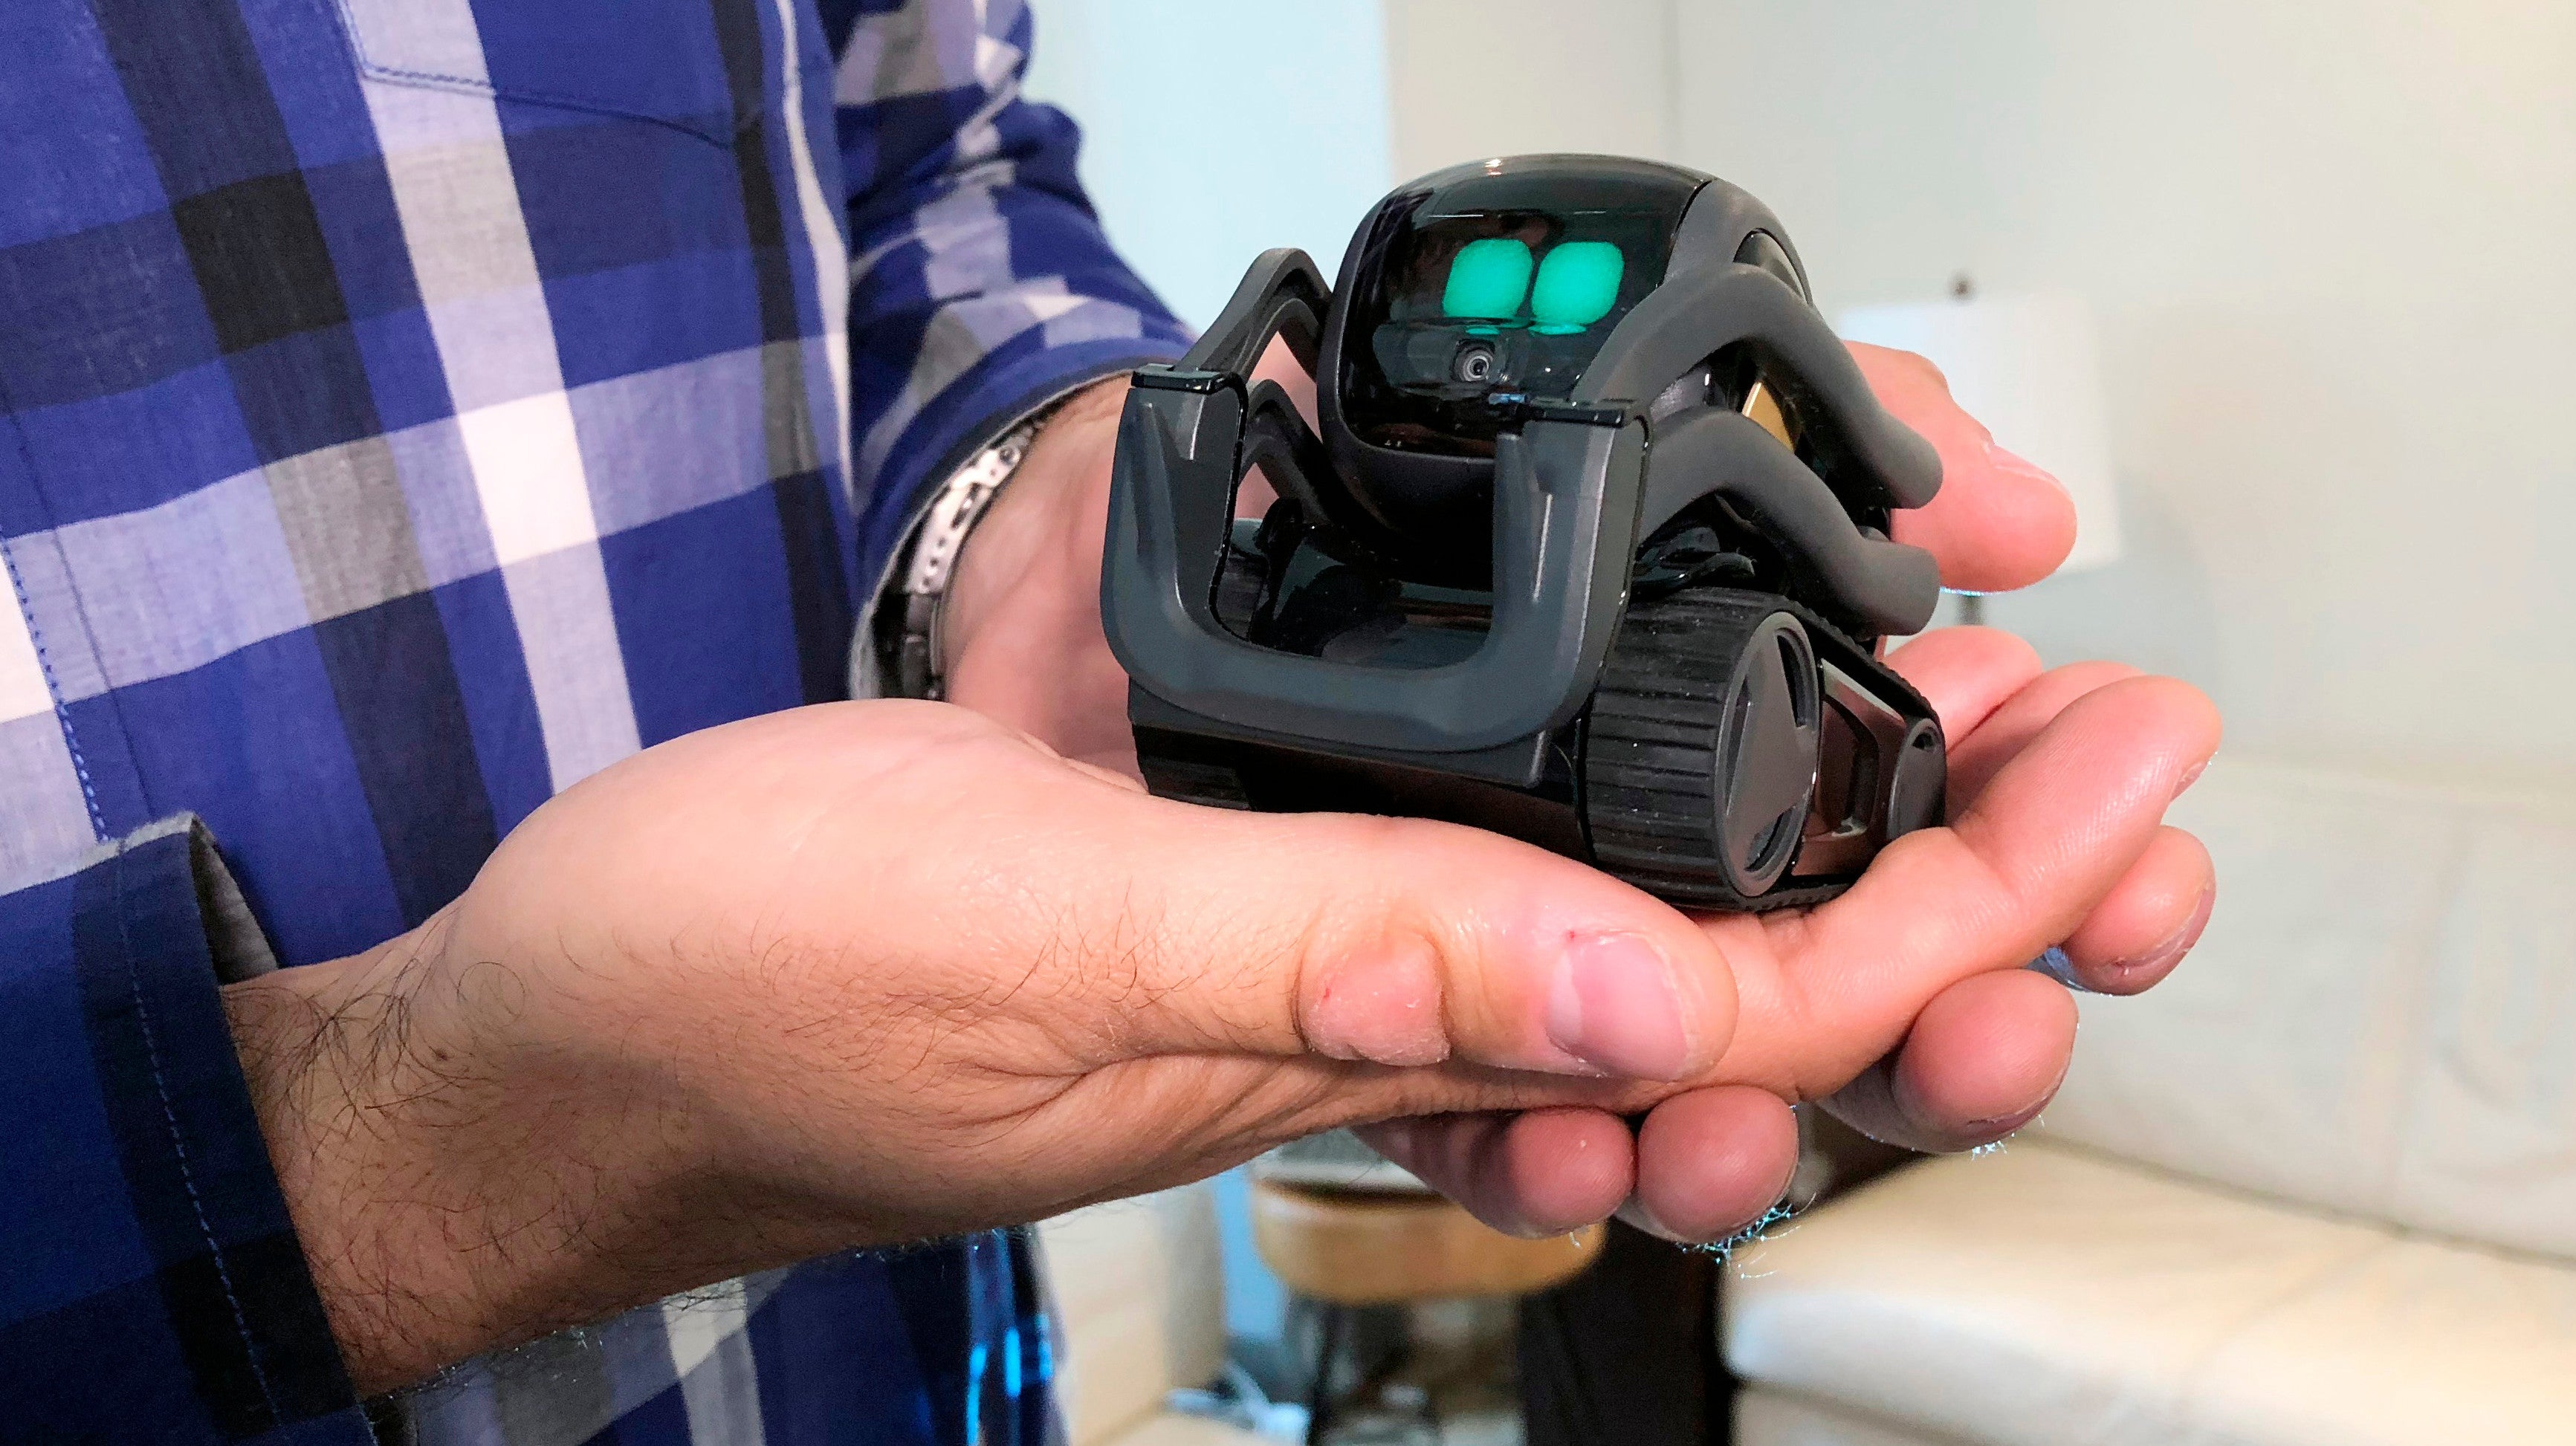 Anki, Maker Of Adorable Robots That Don't Do All That Much, Abruptly Shuts Down